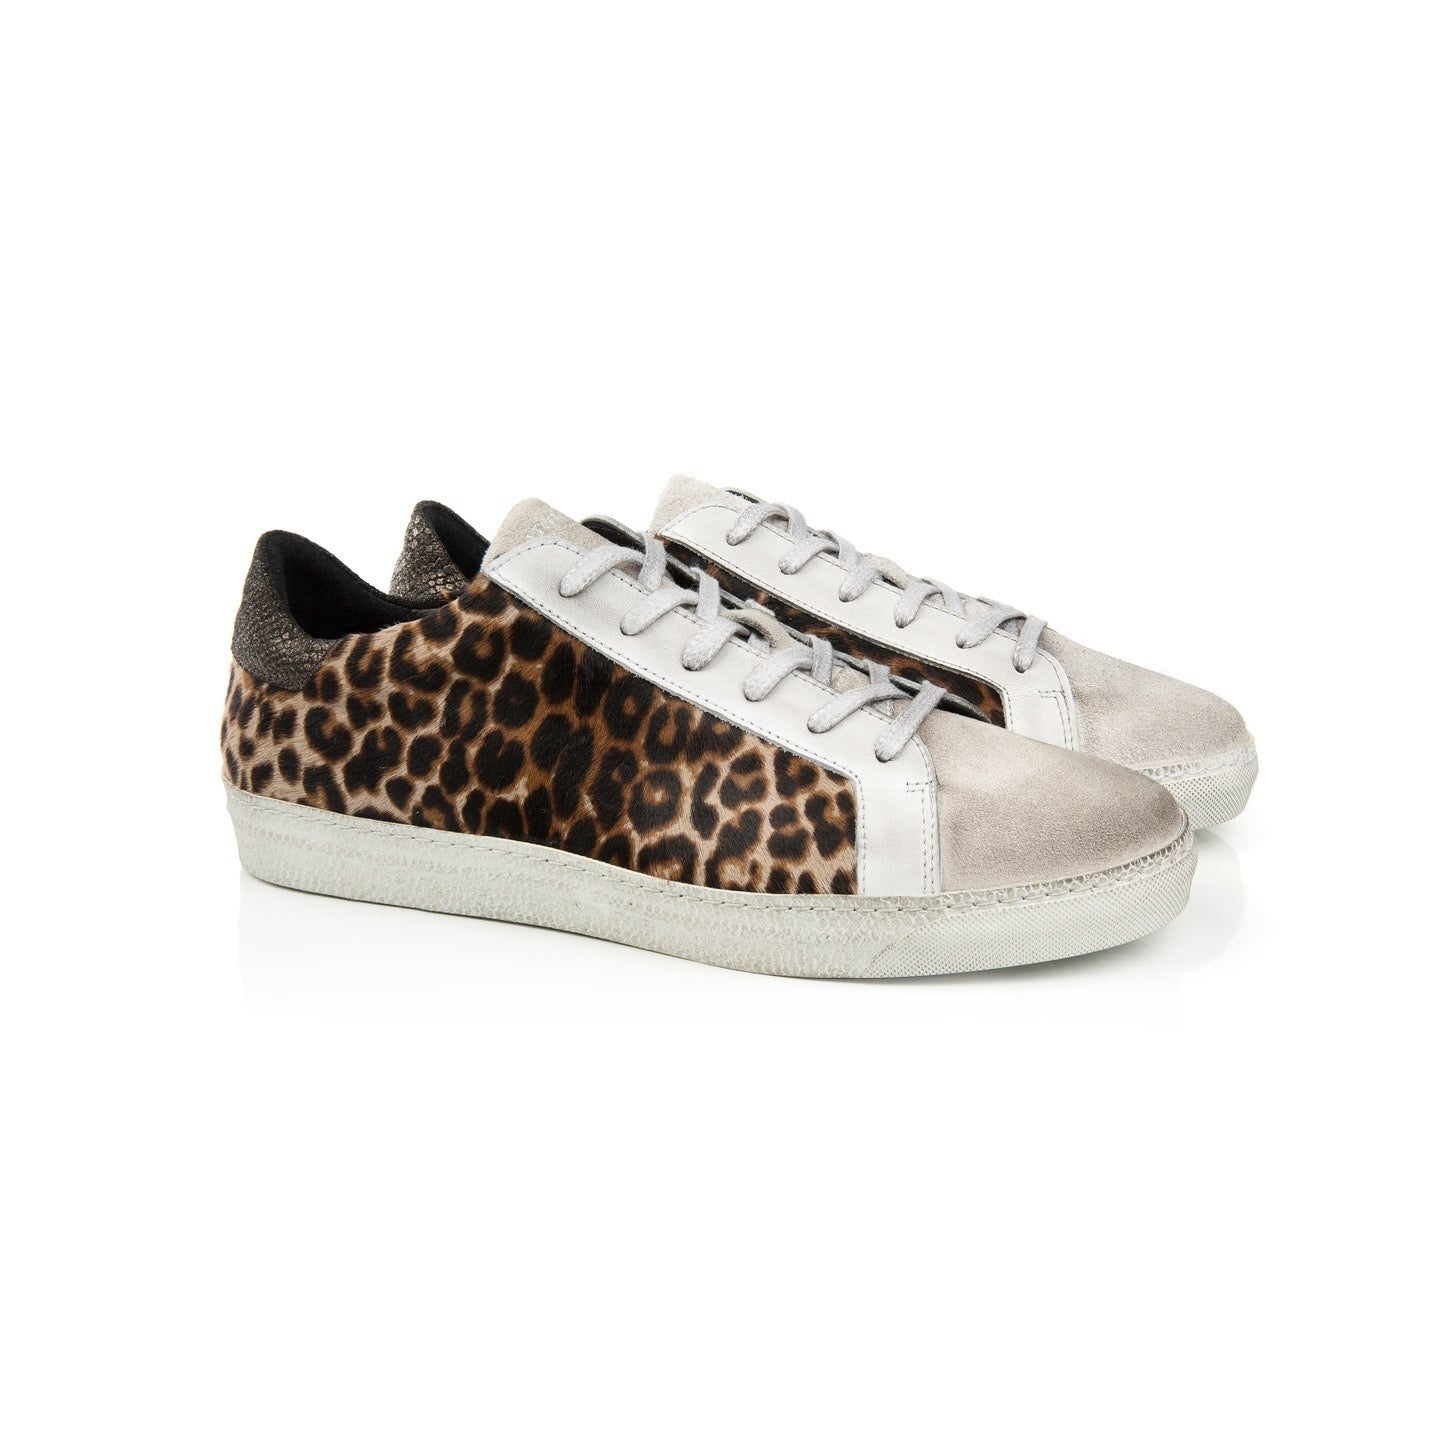 CRU: LEOPARD PRINT TRAINERS - PRE-ORDER (DISPATCH W/C 24TH MAY)